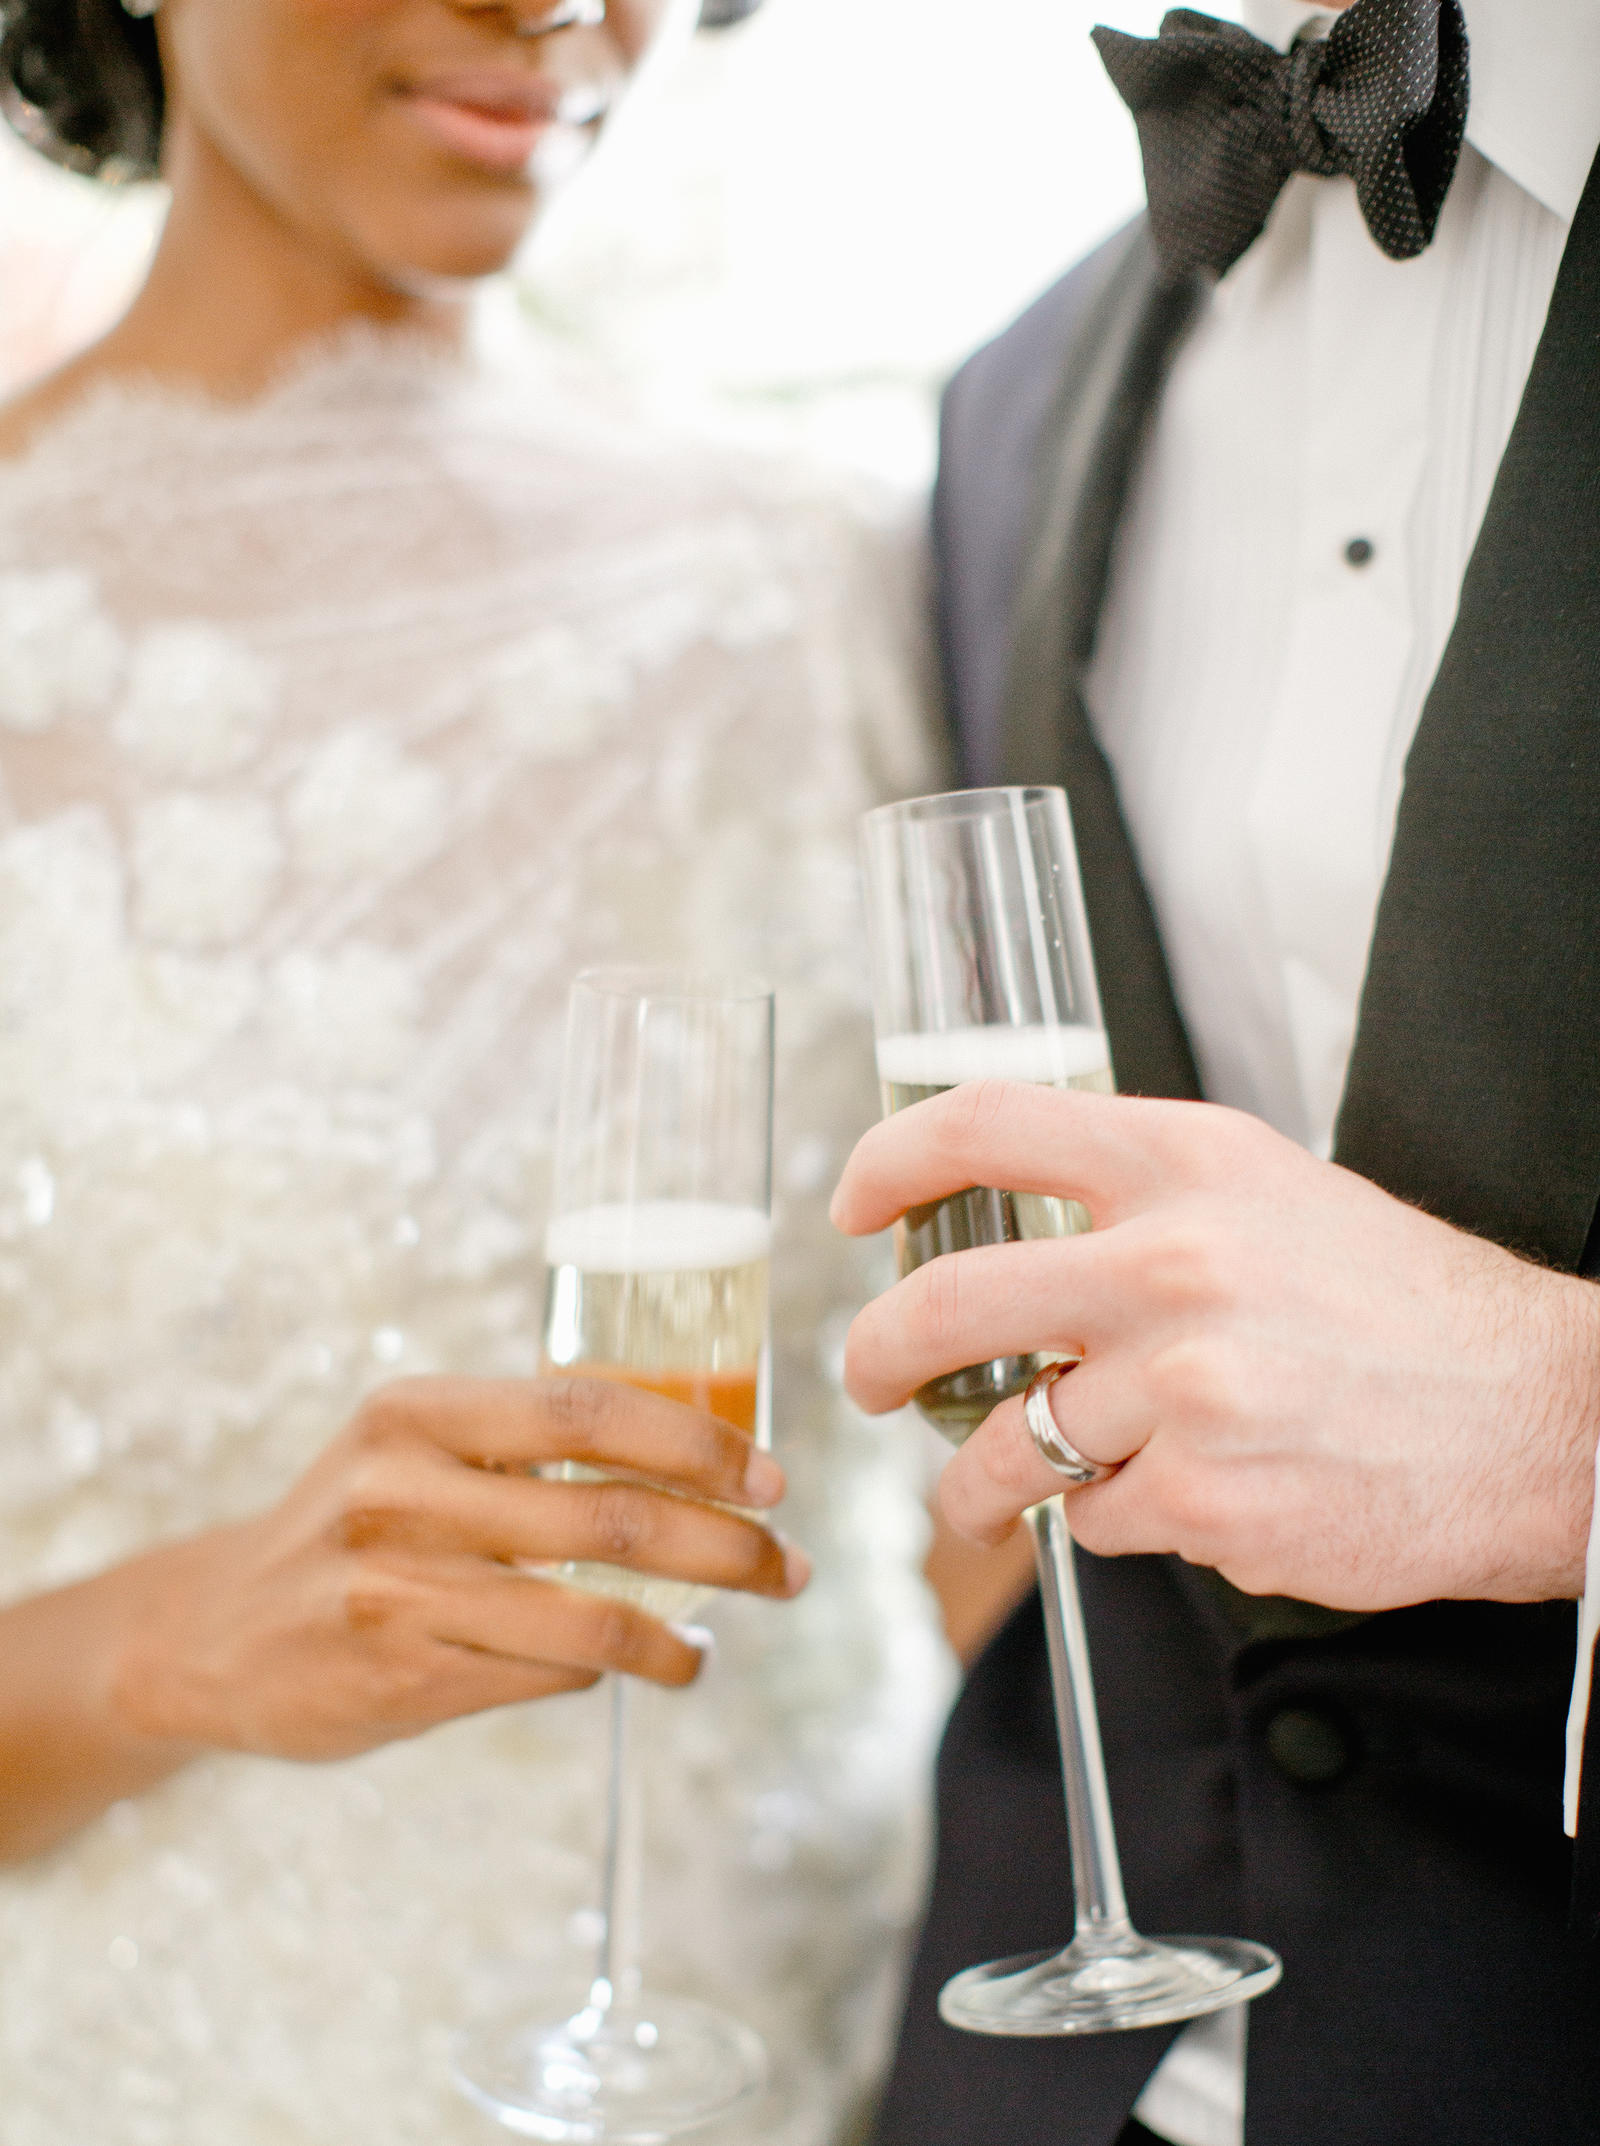 Editorial Photography | Atlanta, GA | A bride and groom holding champagne flutes.